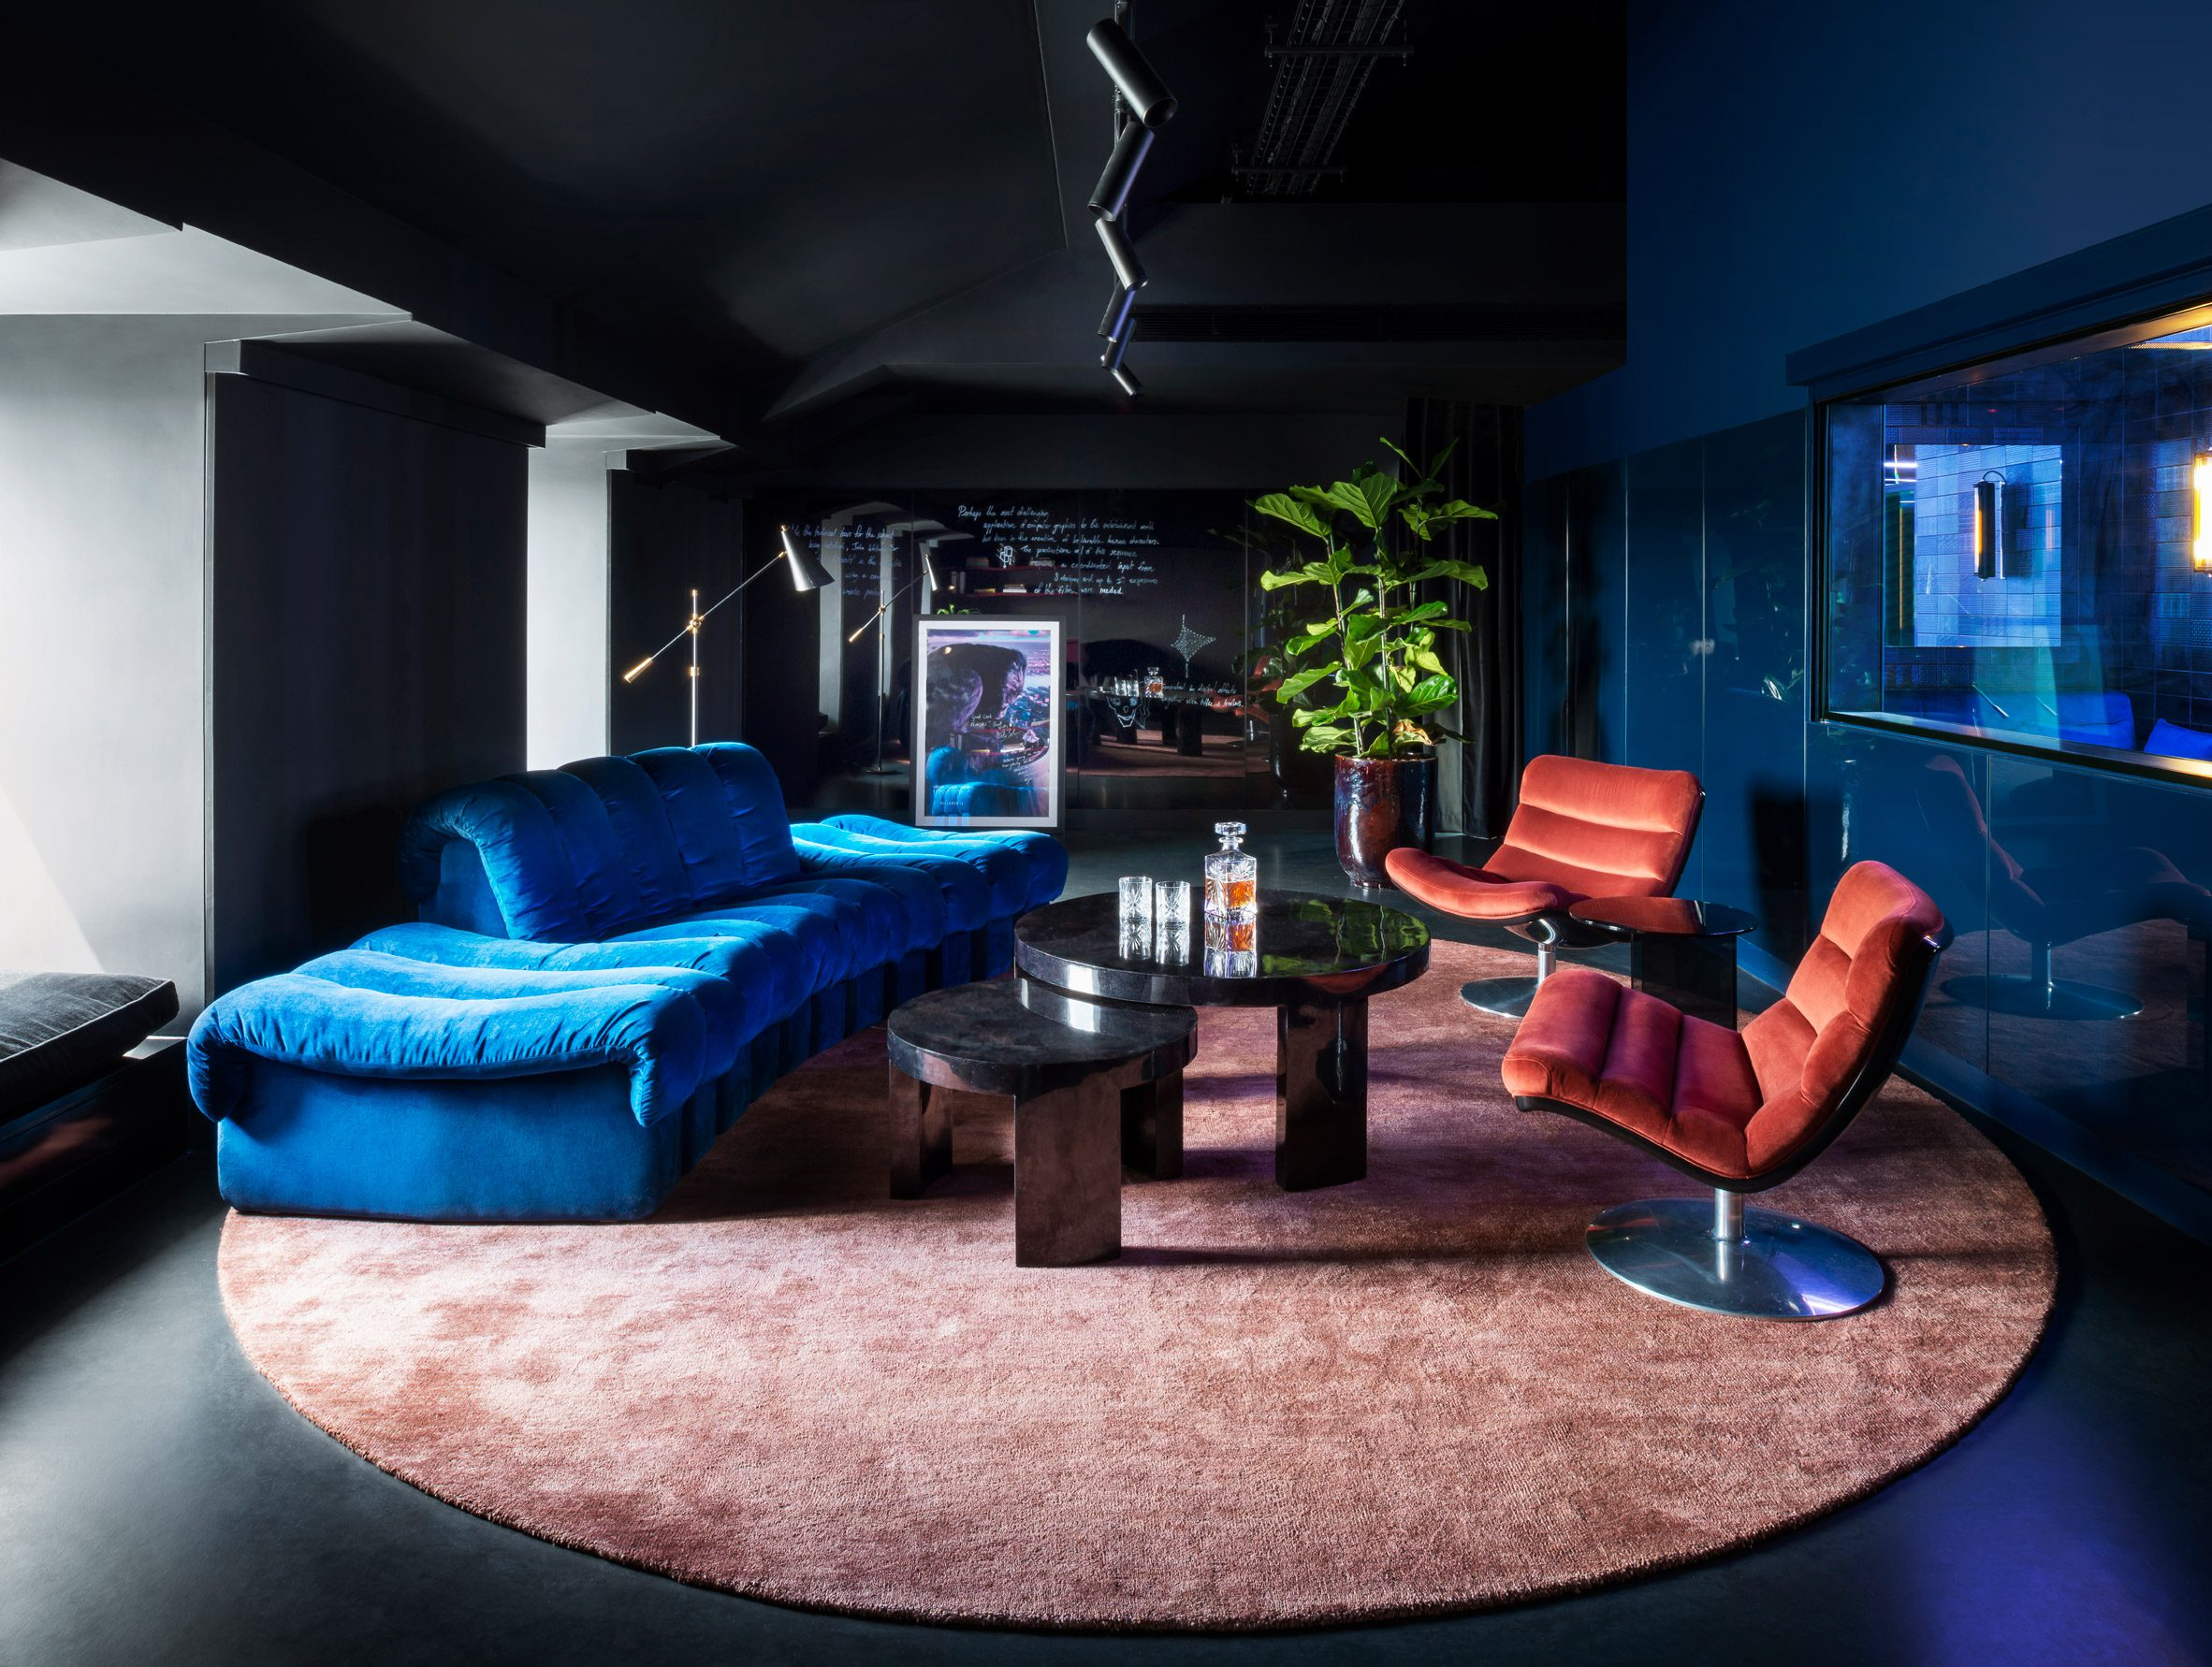 Blue and salmon furnishings pictured in a dark painted room